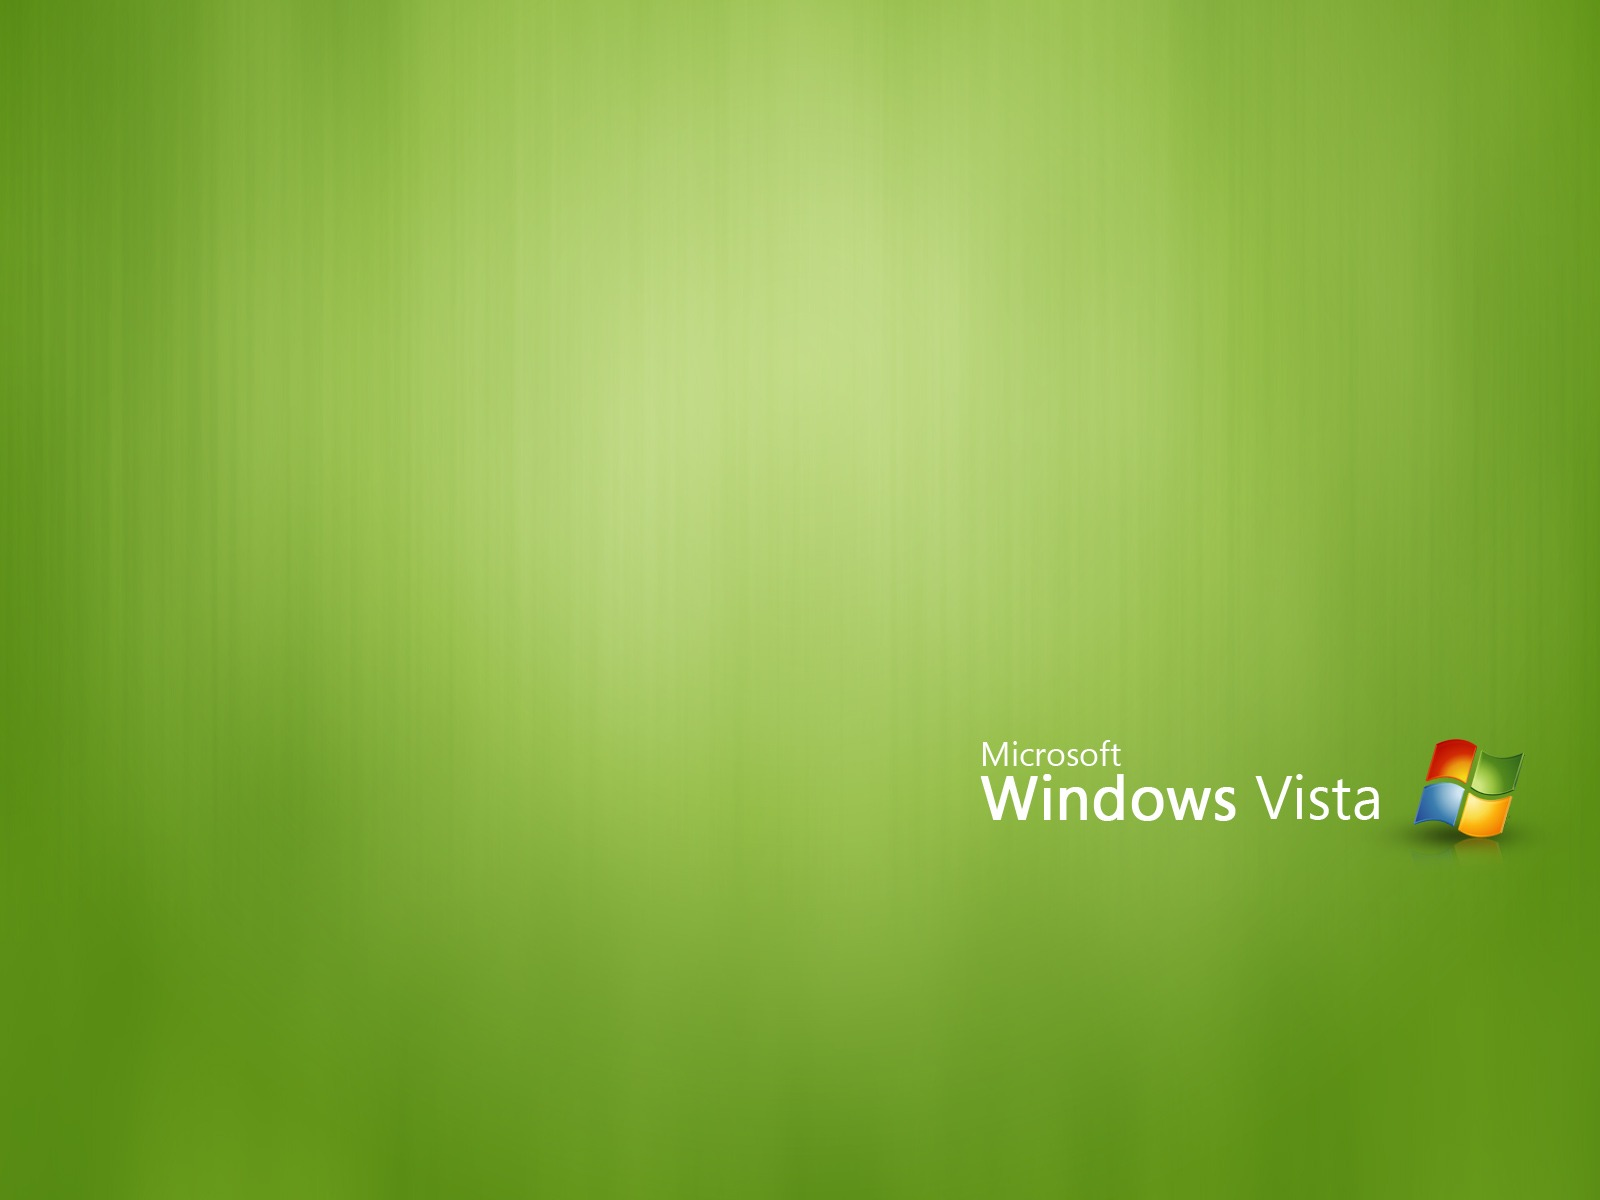 Green Windows Vista